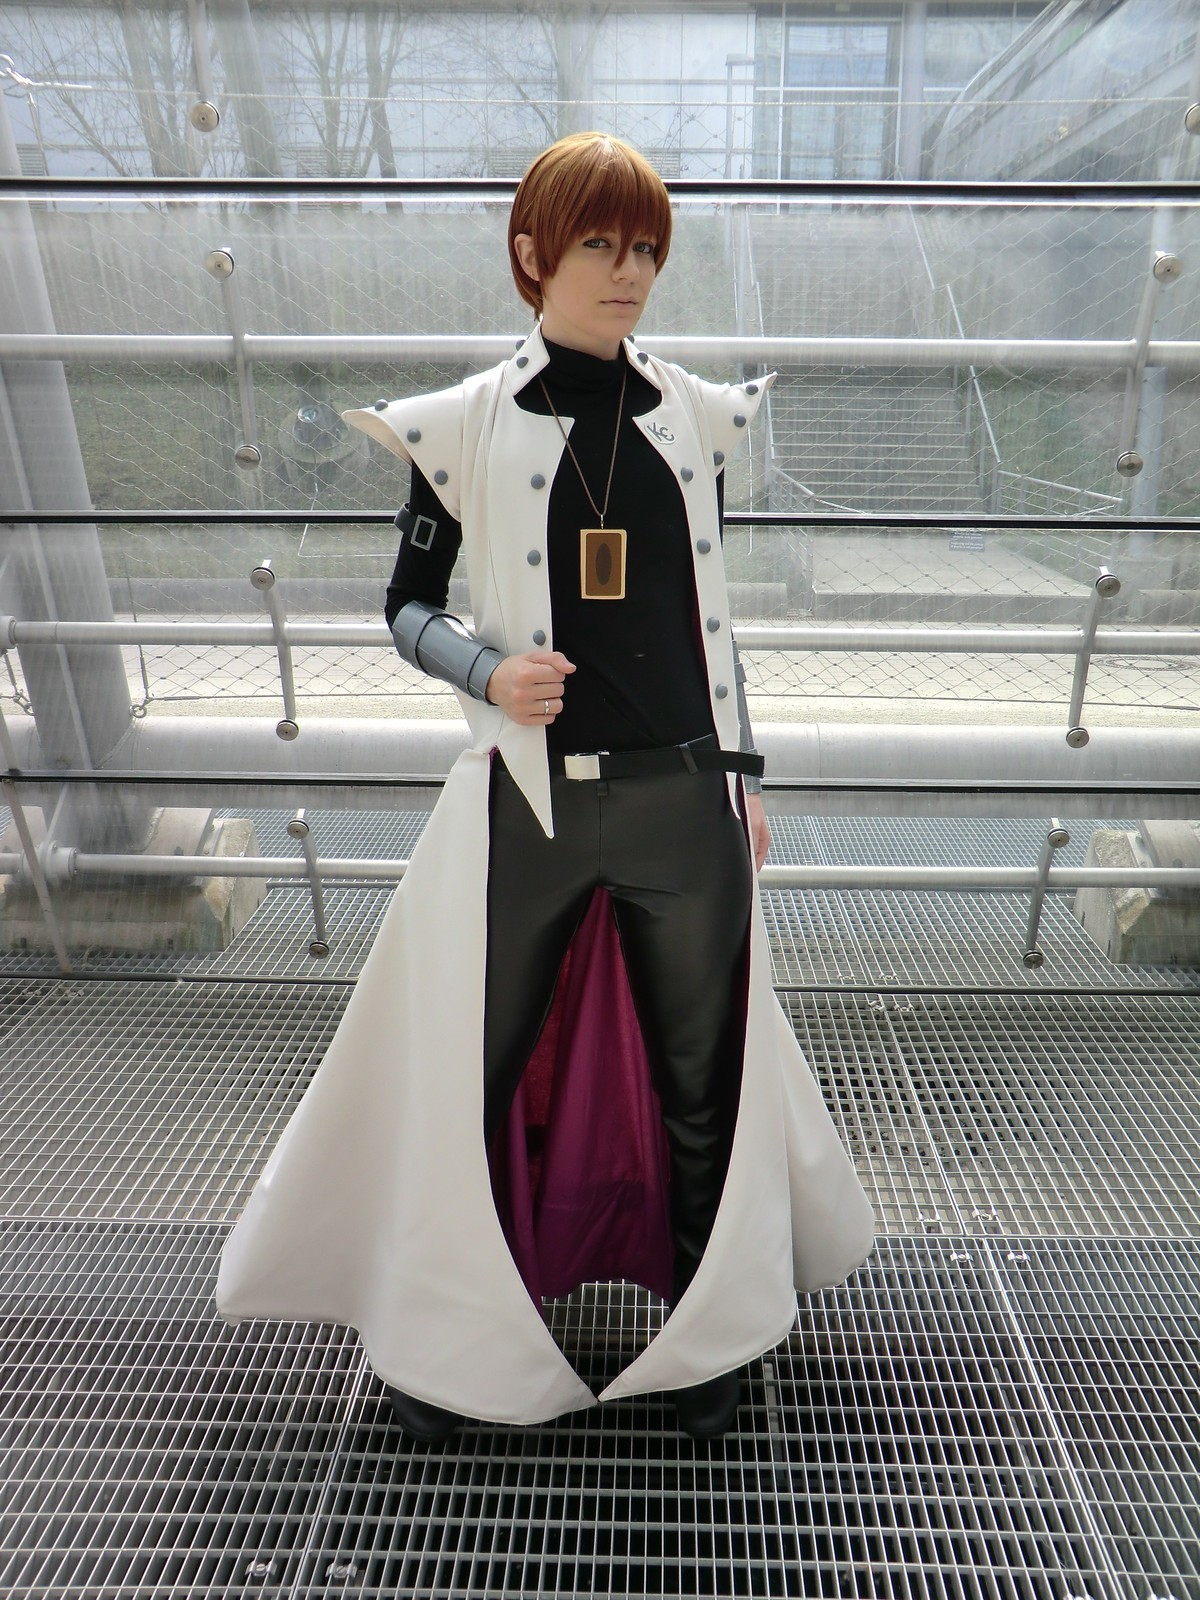 3. Your most recent cosplay. Seto friiiiiiiiiiiggiiiiiiiiiiiiiin Kaiba! 8D <3 Done in March @LBM c: I love him so much!